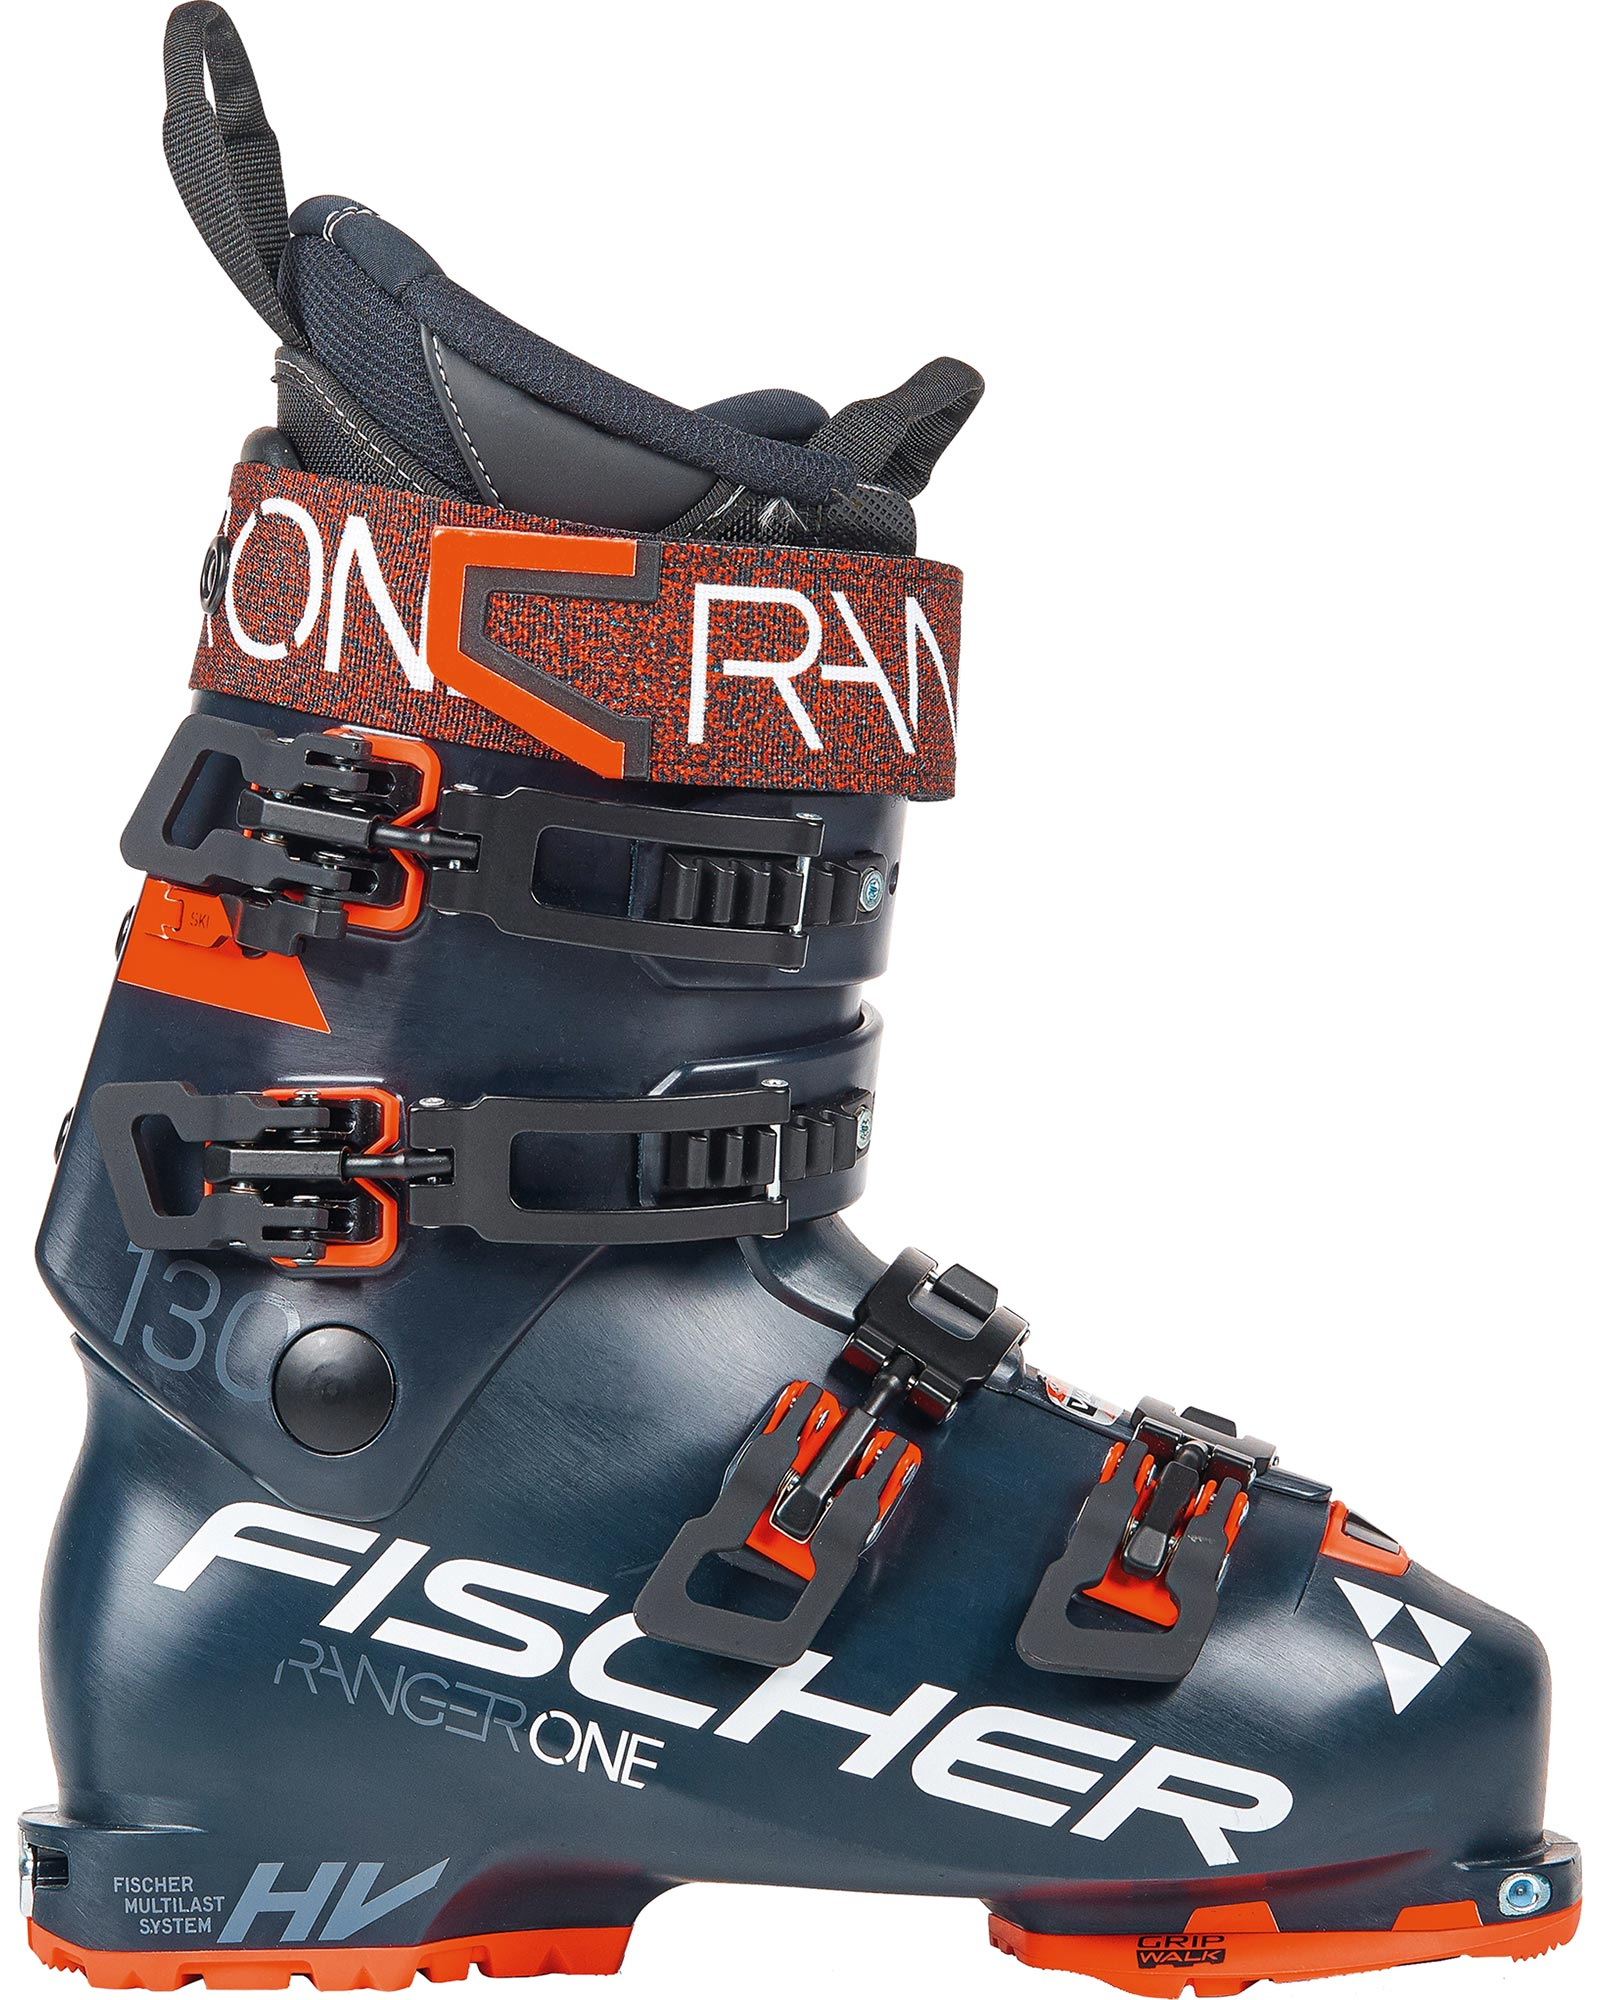 Fischer Men's Ranger ONE 130 VACUUM Walk DYN Backcountry Ski Boots 2020 / 2021 0